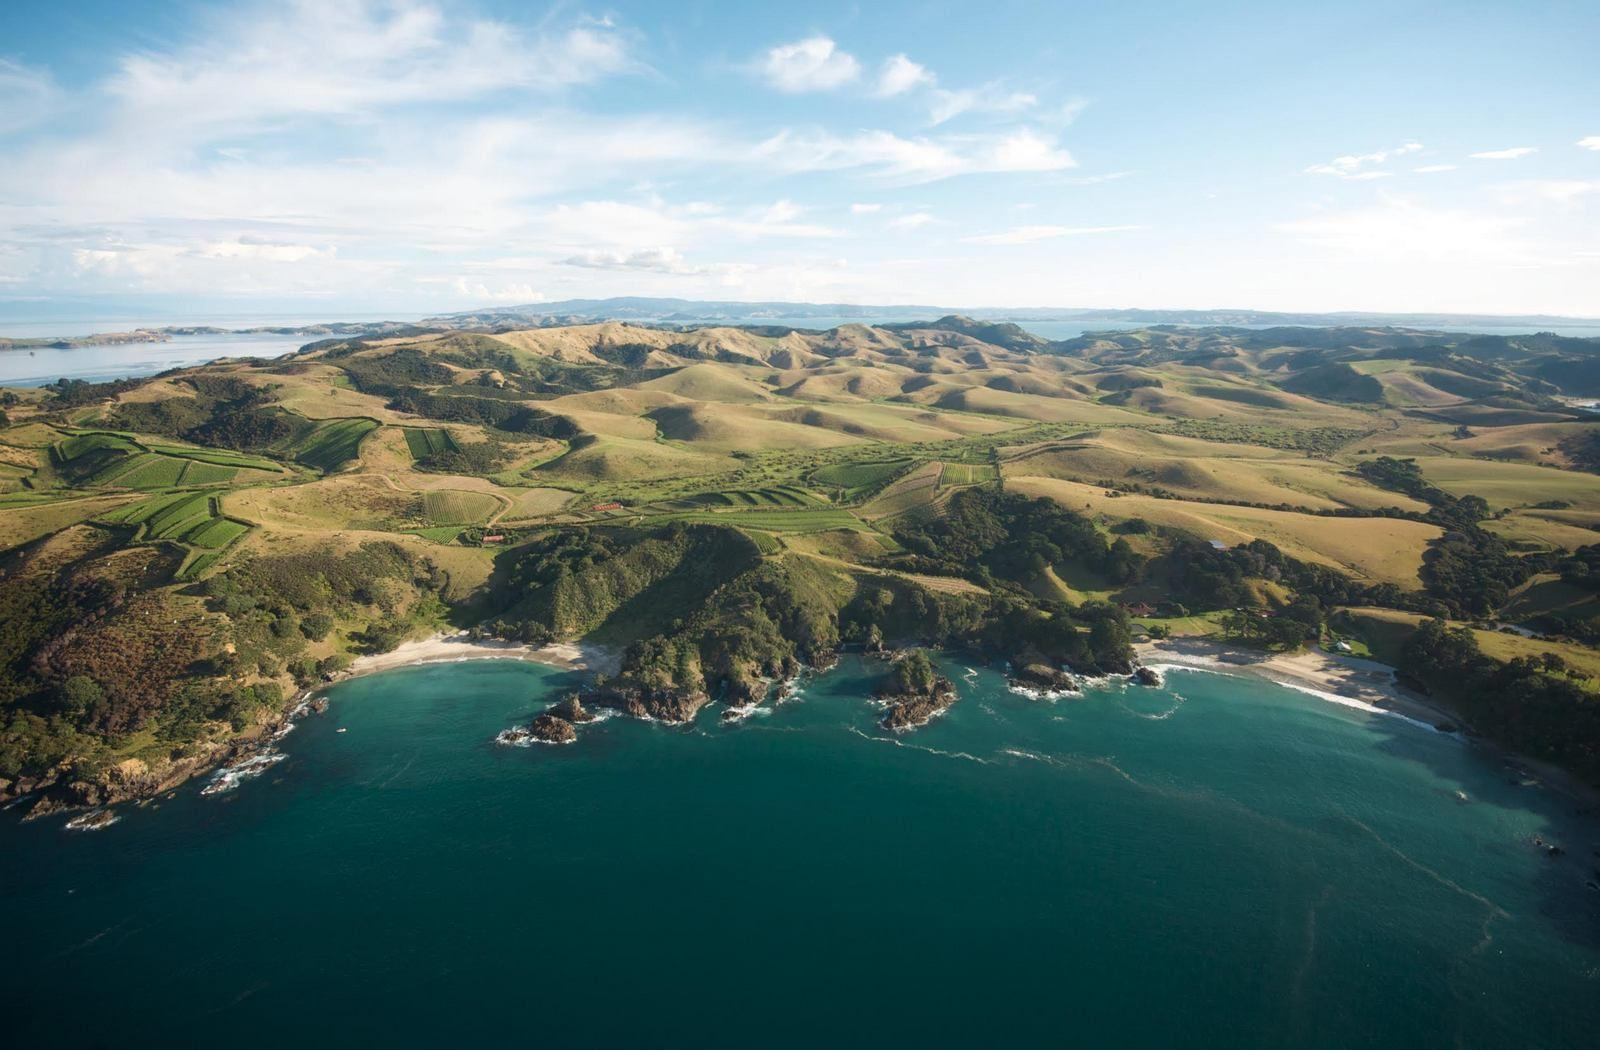 Waiheke Island as seen from a Helicopter